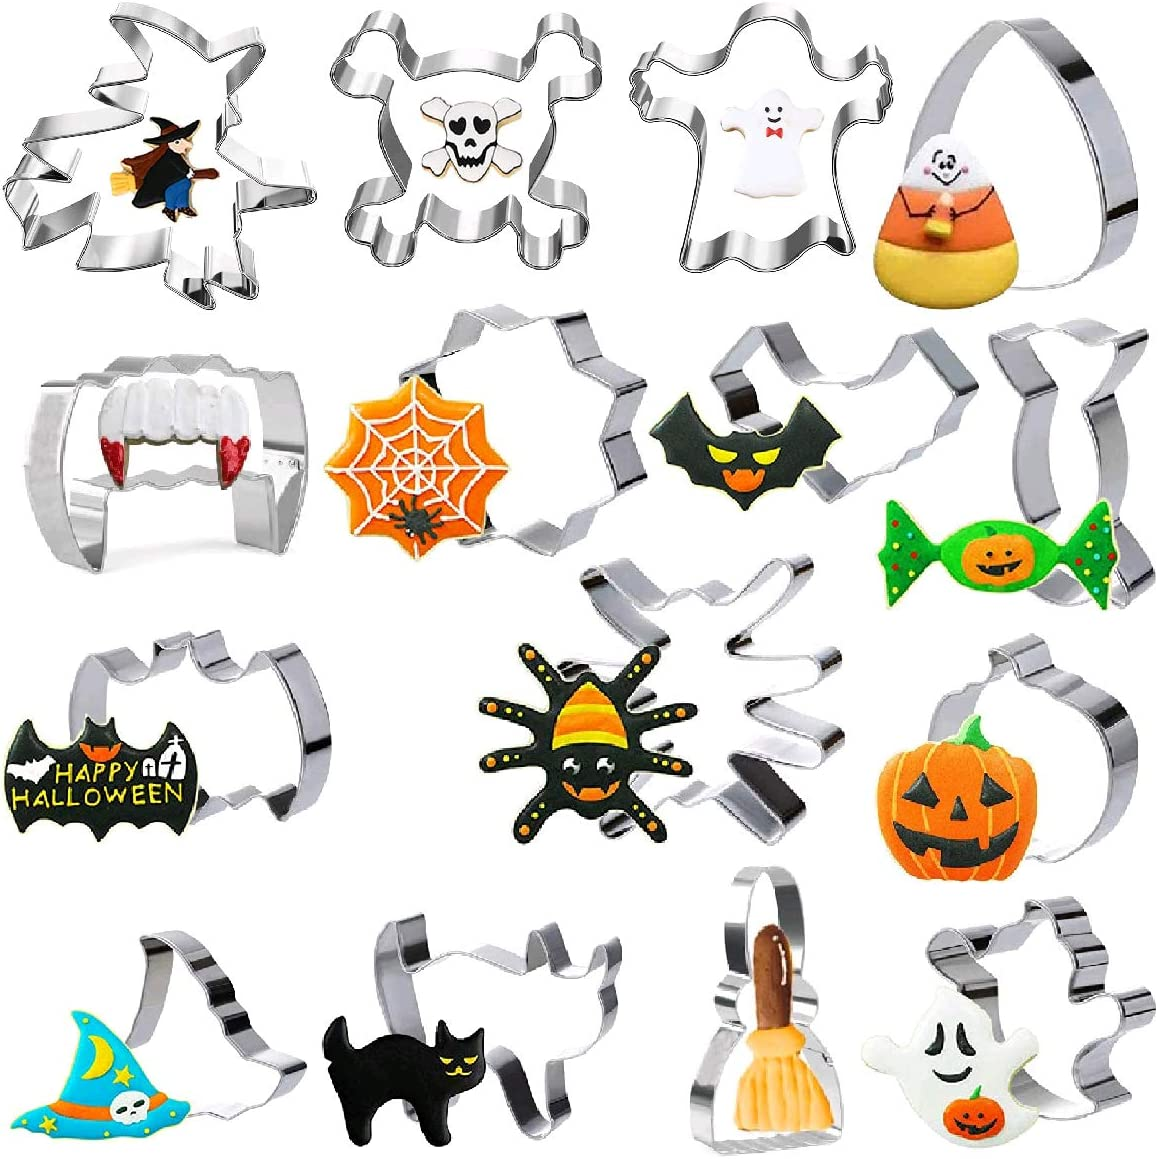 Cofe-BY Funny Cookie Cutters Shapes Set of 15pcs - Kids Cookie Cutters of Pumpkin, Skull, Ghost, Cat, Bat, Witch's Hat, Spider, Corn, Broom, Vampire Teeth and Candy - Stainless Steel Biscuit Cutter